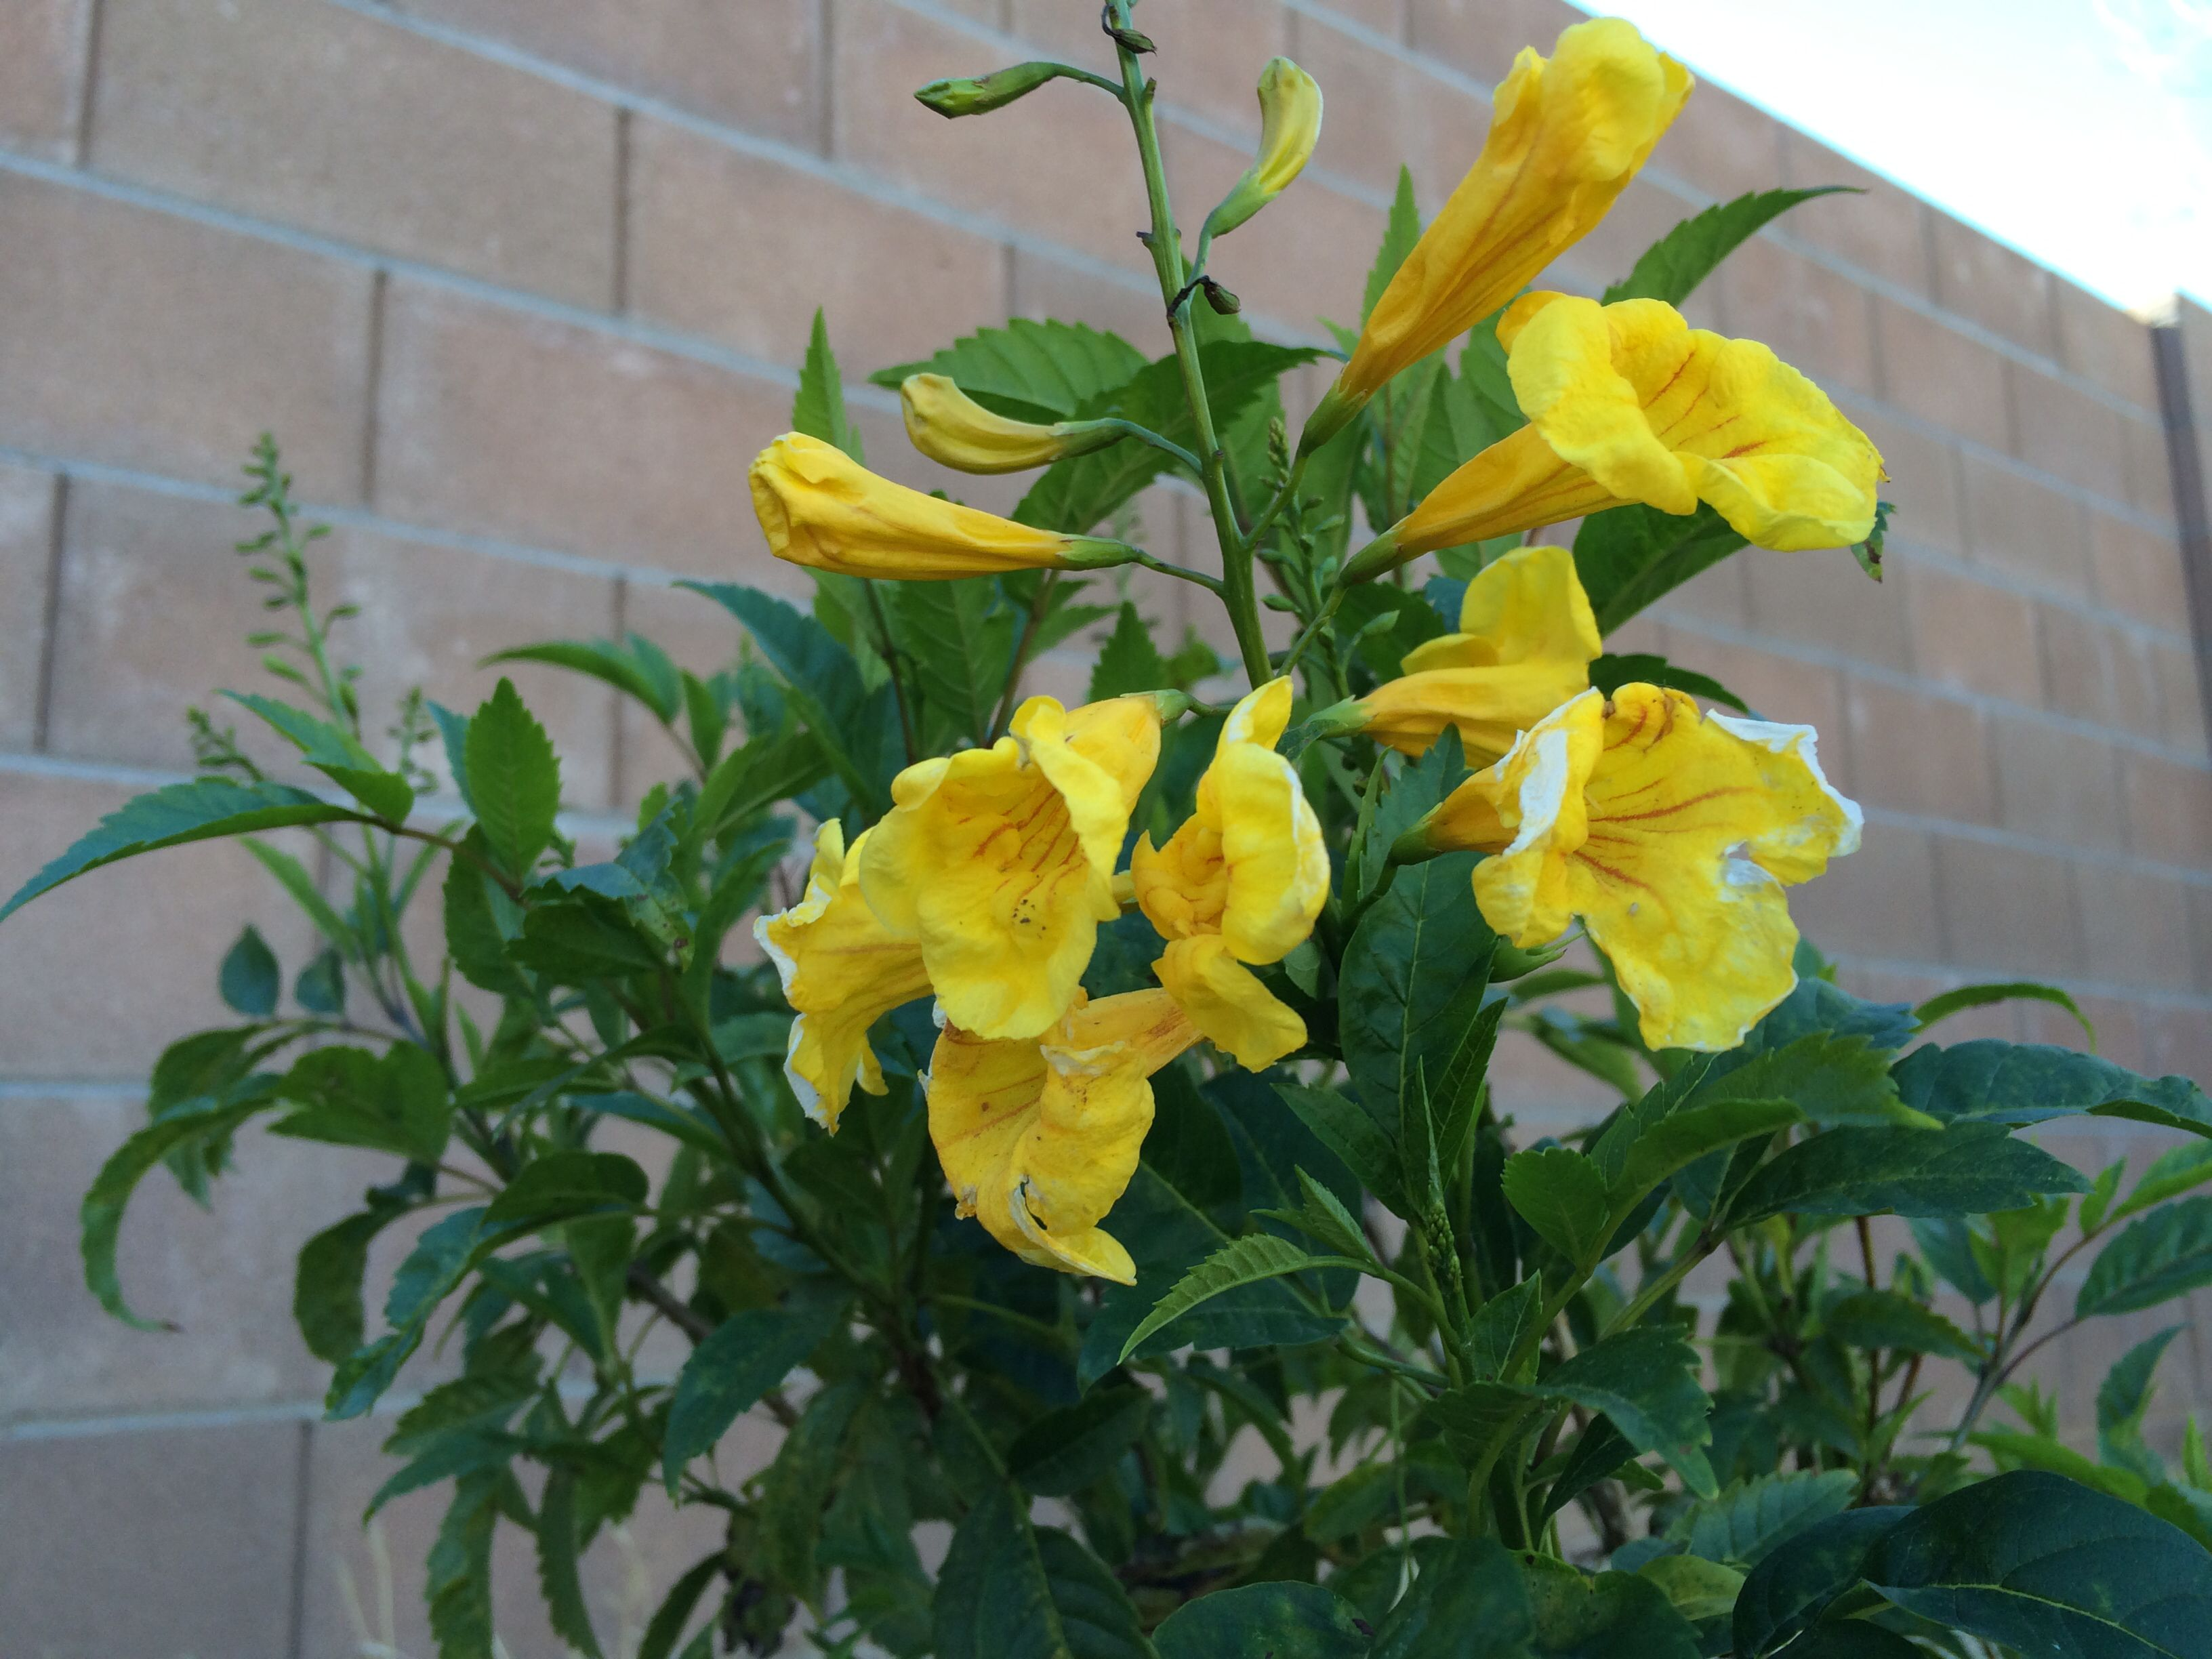 Yellow bells! Right up there with bluebonnets in the contest for best TX flower in my book. Blooms all summer.